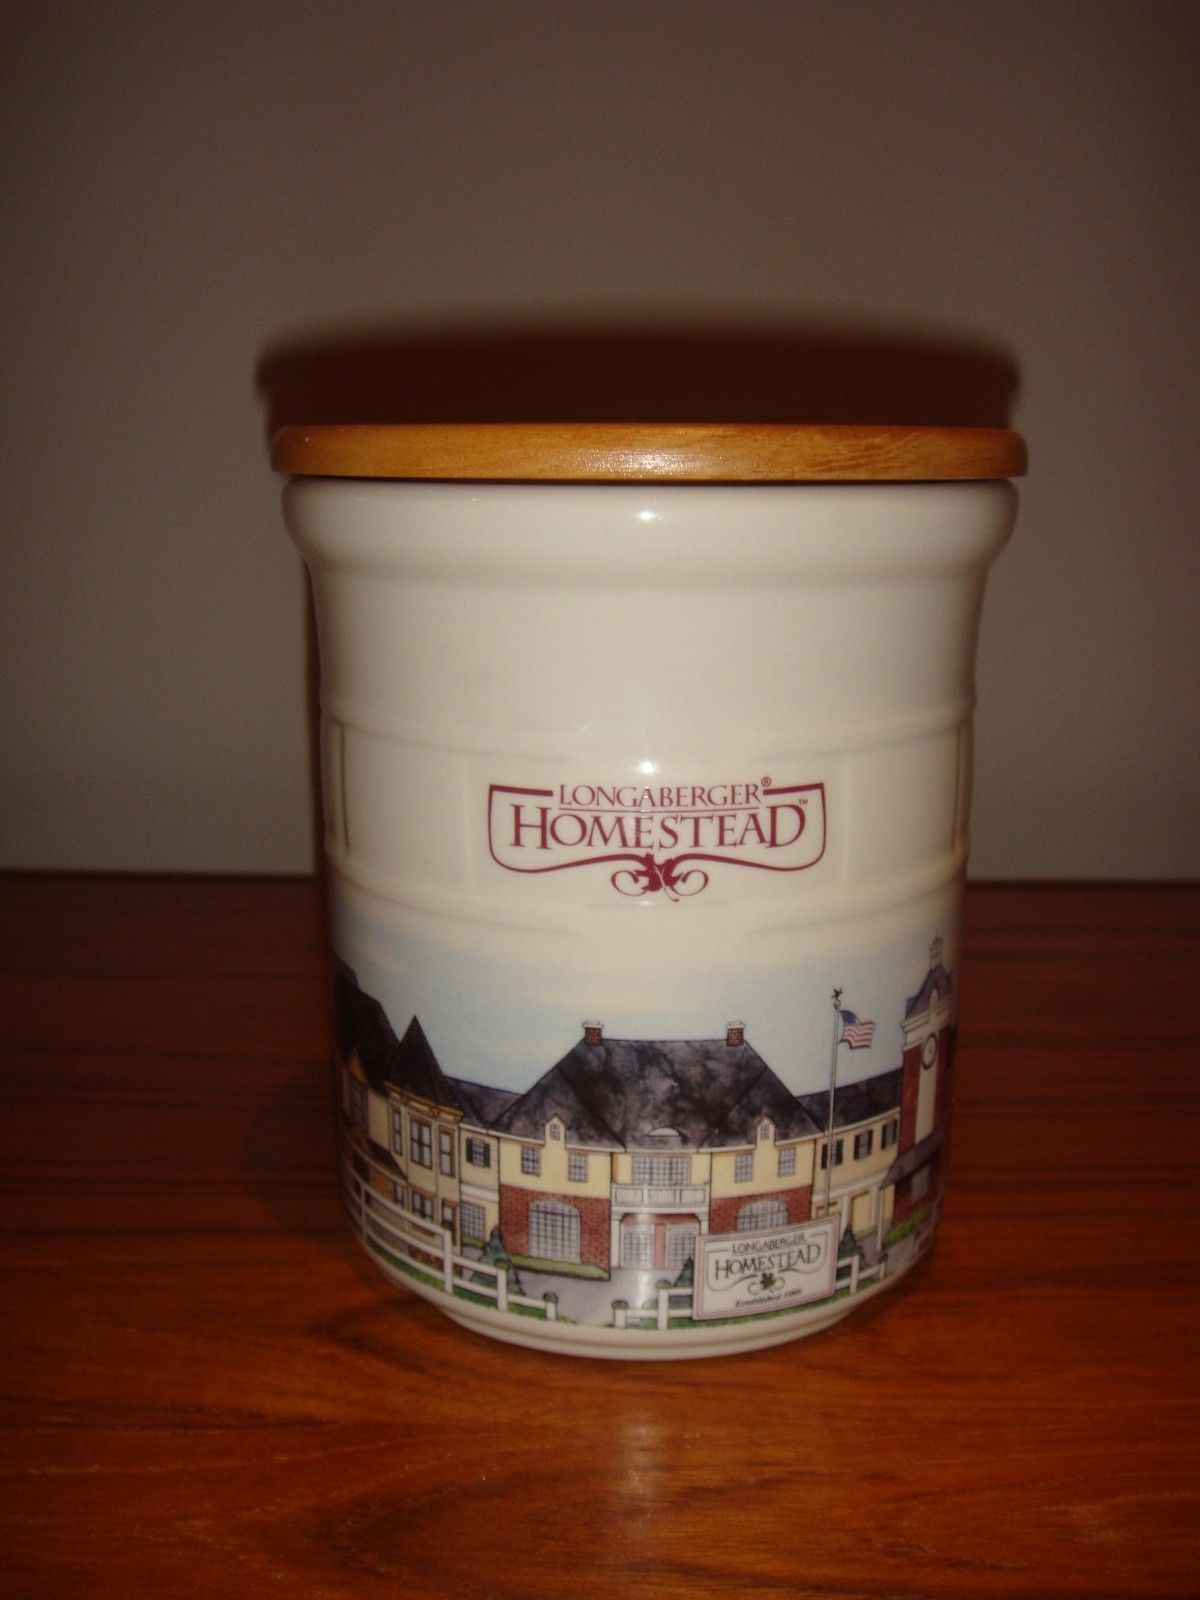 Longaberger Pottery Homestead 2 Quart Crock With Lid